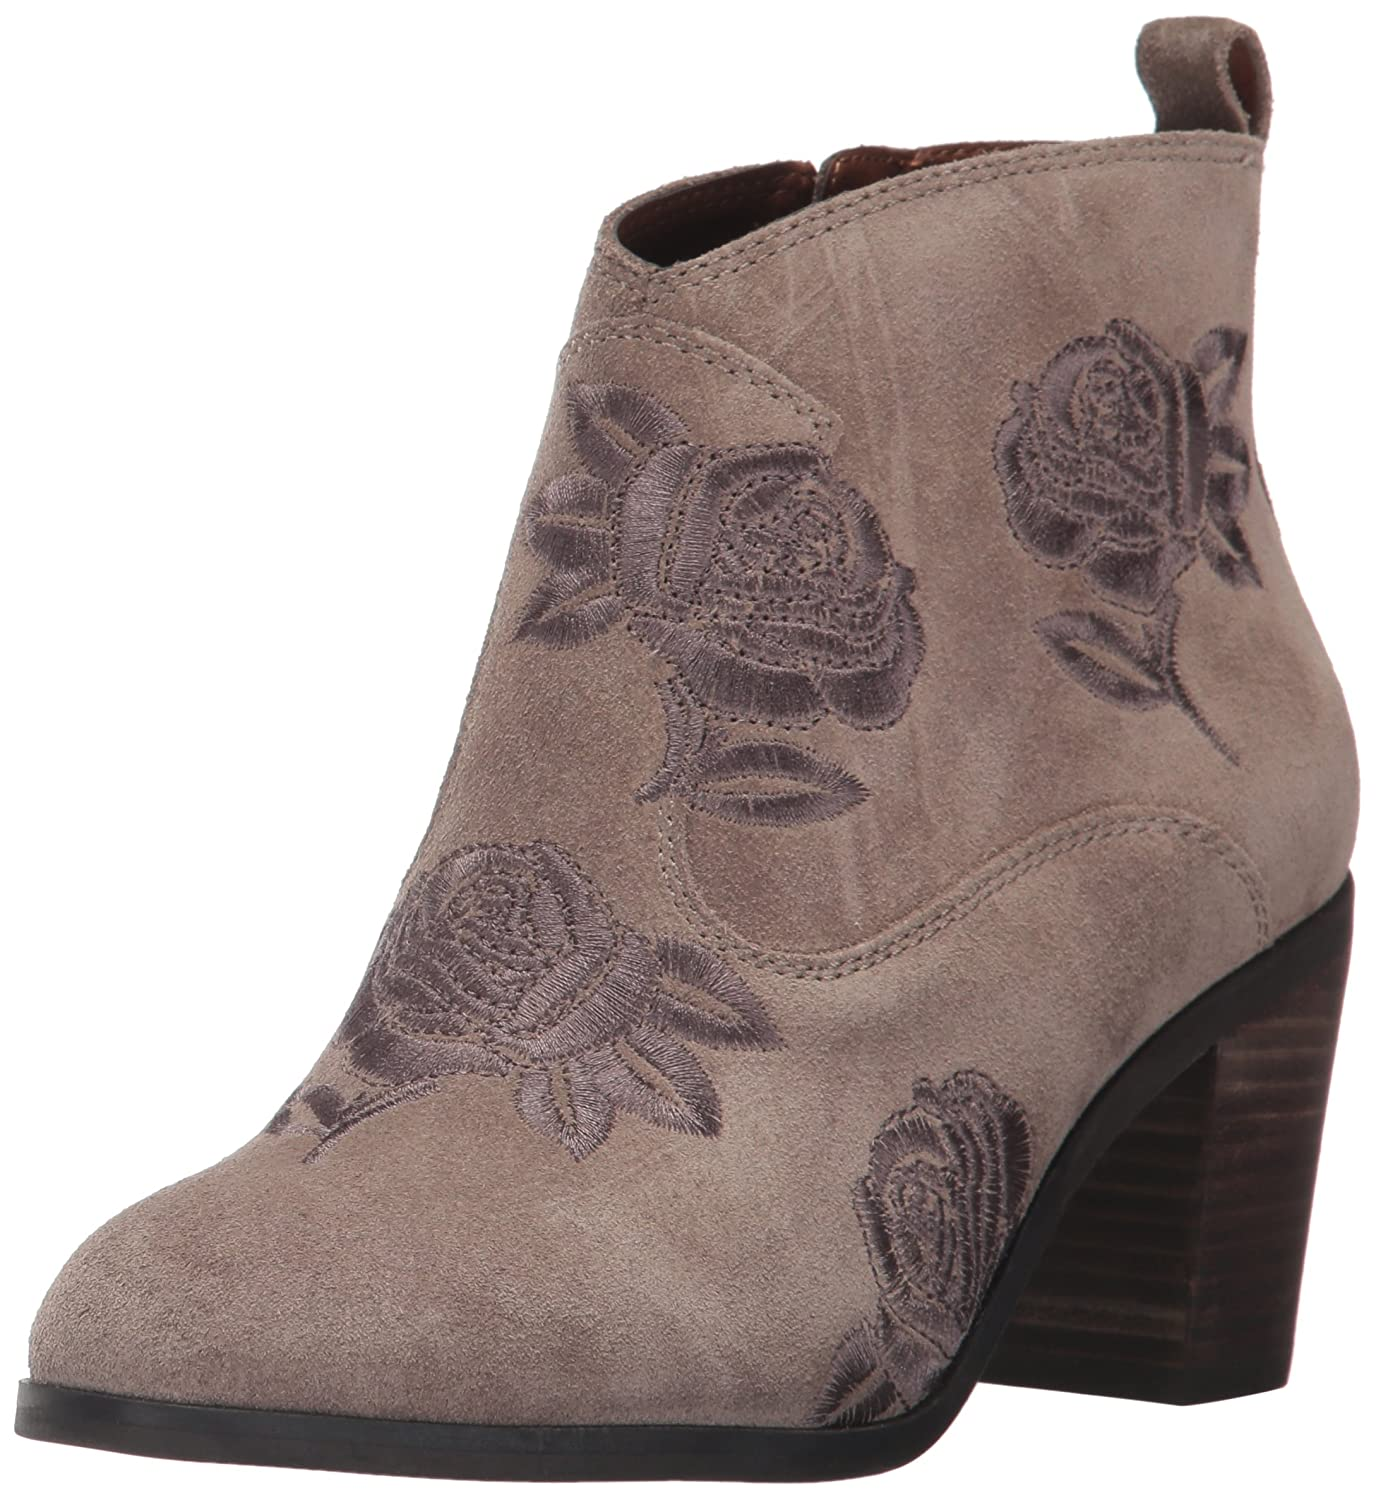 Lucky Brand Women's Pexton Ankle Boot B06XSMP1S9 8 M US|Brindle